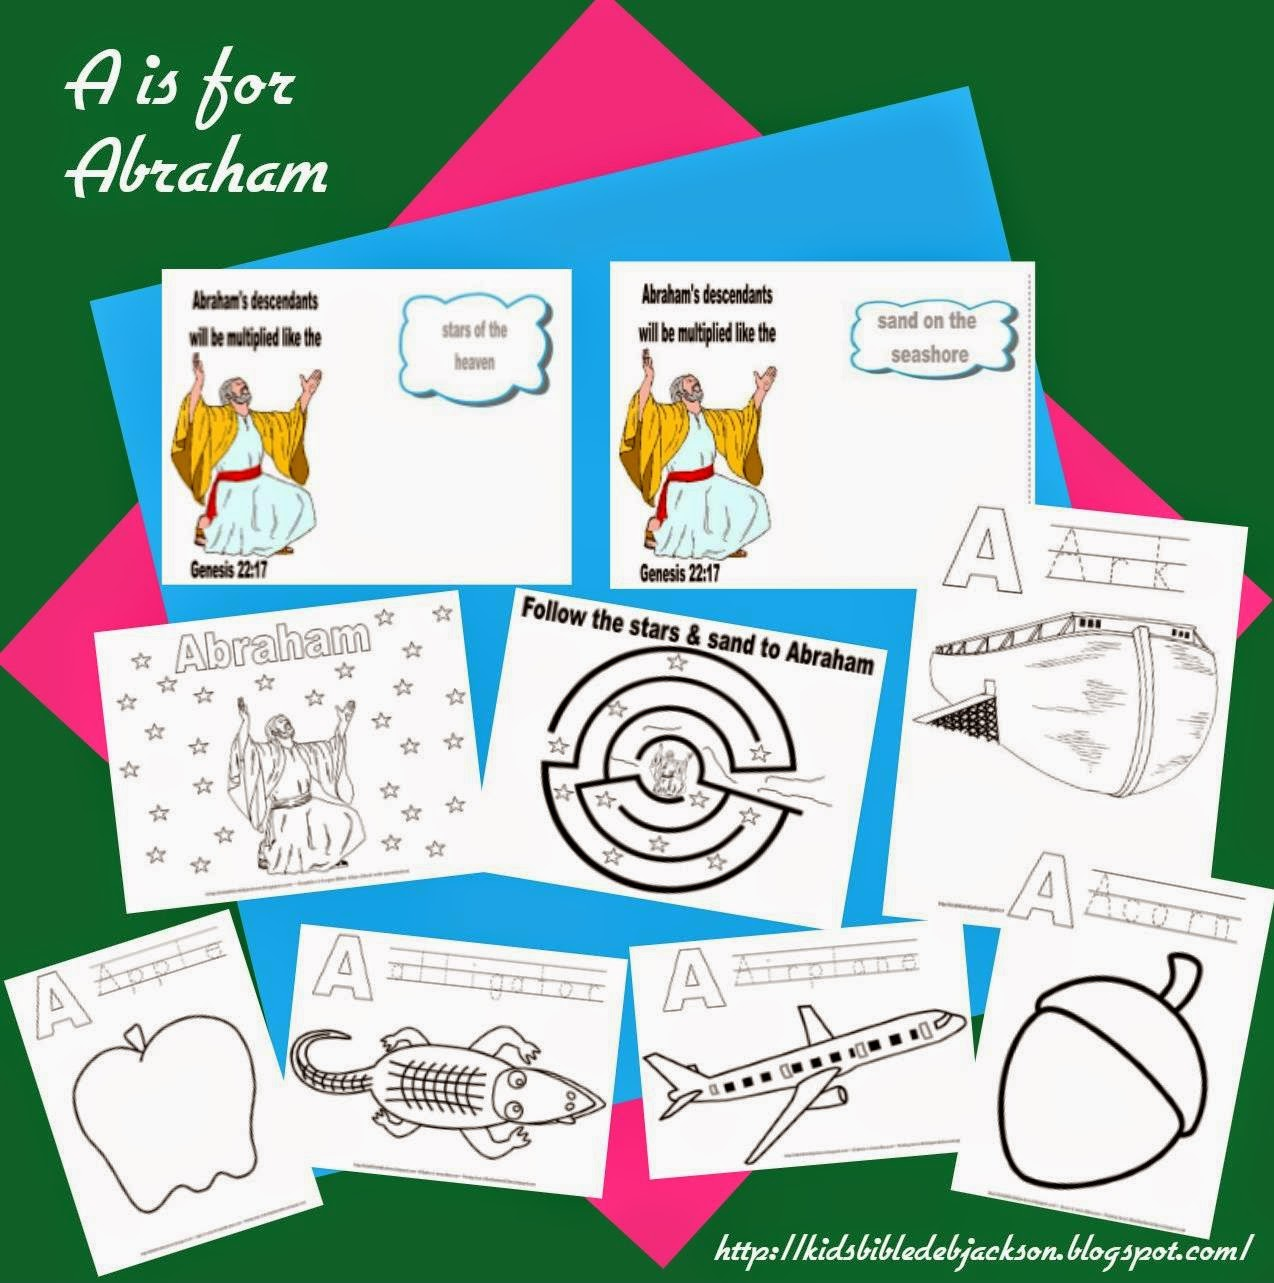 http://kidsbibledebjackson.blogspot.com/2014/04/preschool-alphabet-is-for-abraham.html